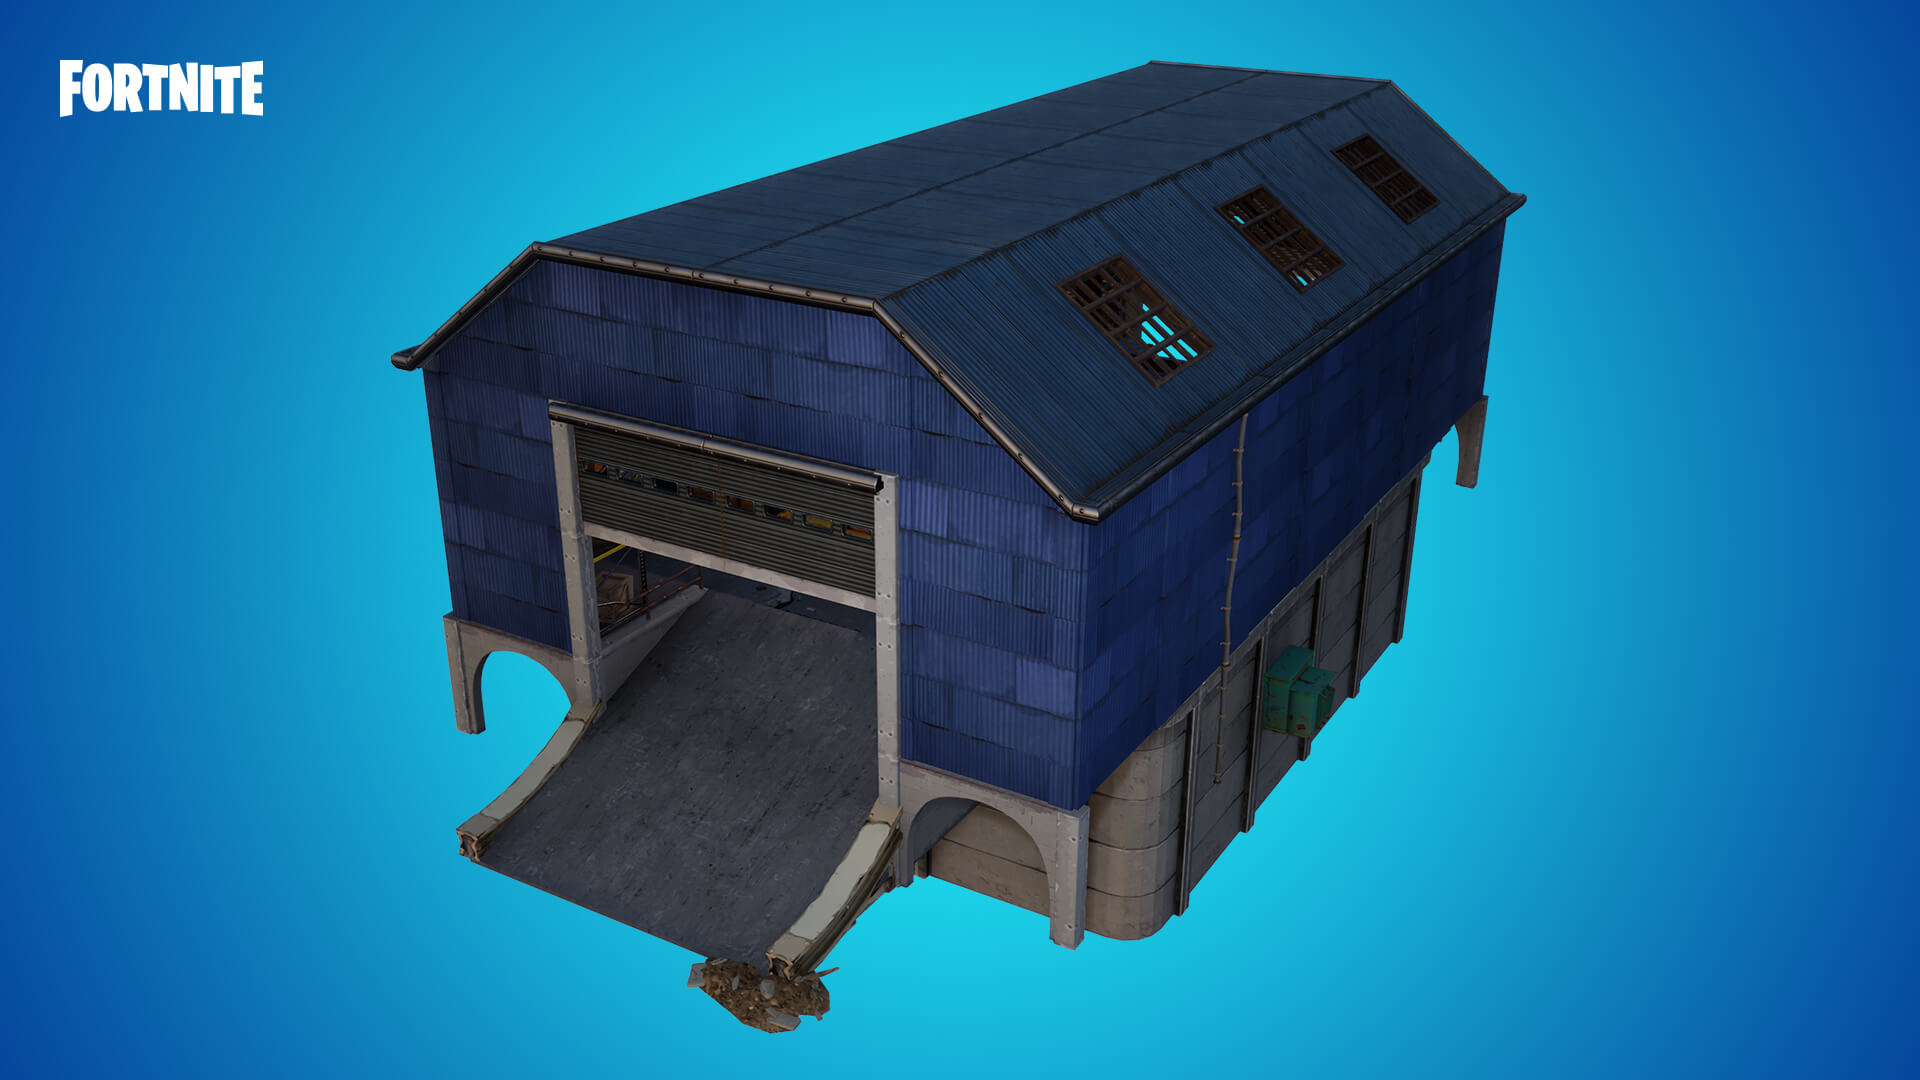 Fortnite%2Fpatch notes%2Fv10 10 content update%2Fcreative header v10 10 content update%2FCreativeDustyPrefabs DustyDepot 1920x1080 1920x1080 aa755914b3b75b5028d2e3a04b156ddde00a1a39 - Обновление контента версия 10.10 для фортнайт